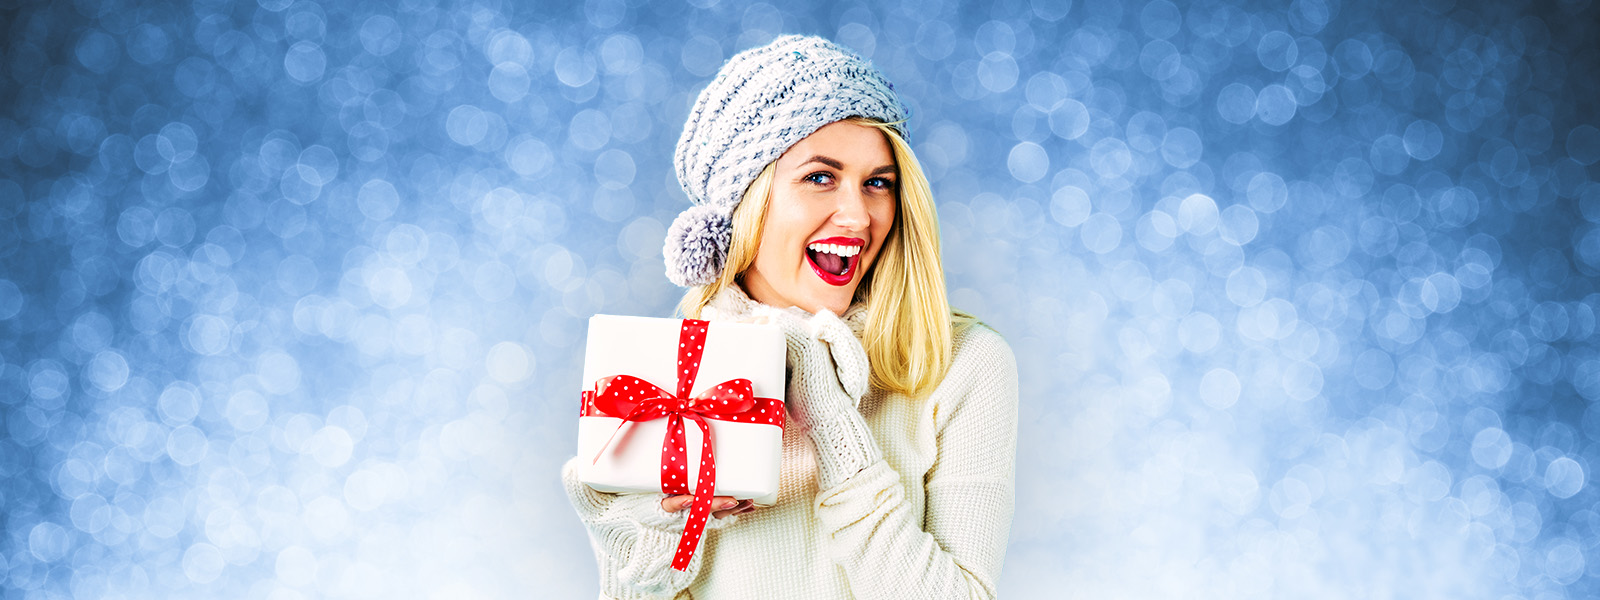 Smiling female wearing sweater, mittens, and winter hat holding wrapped present with joy